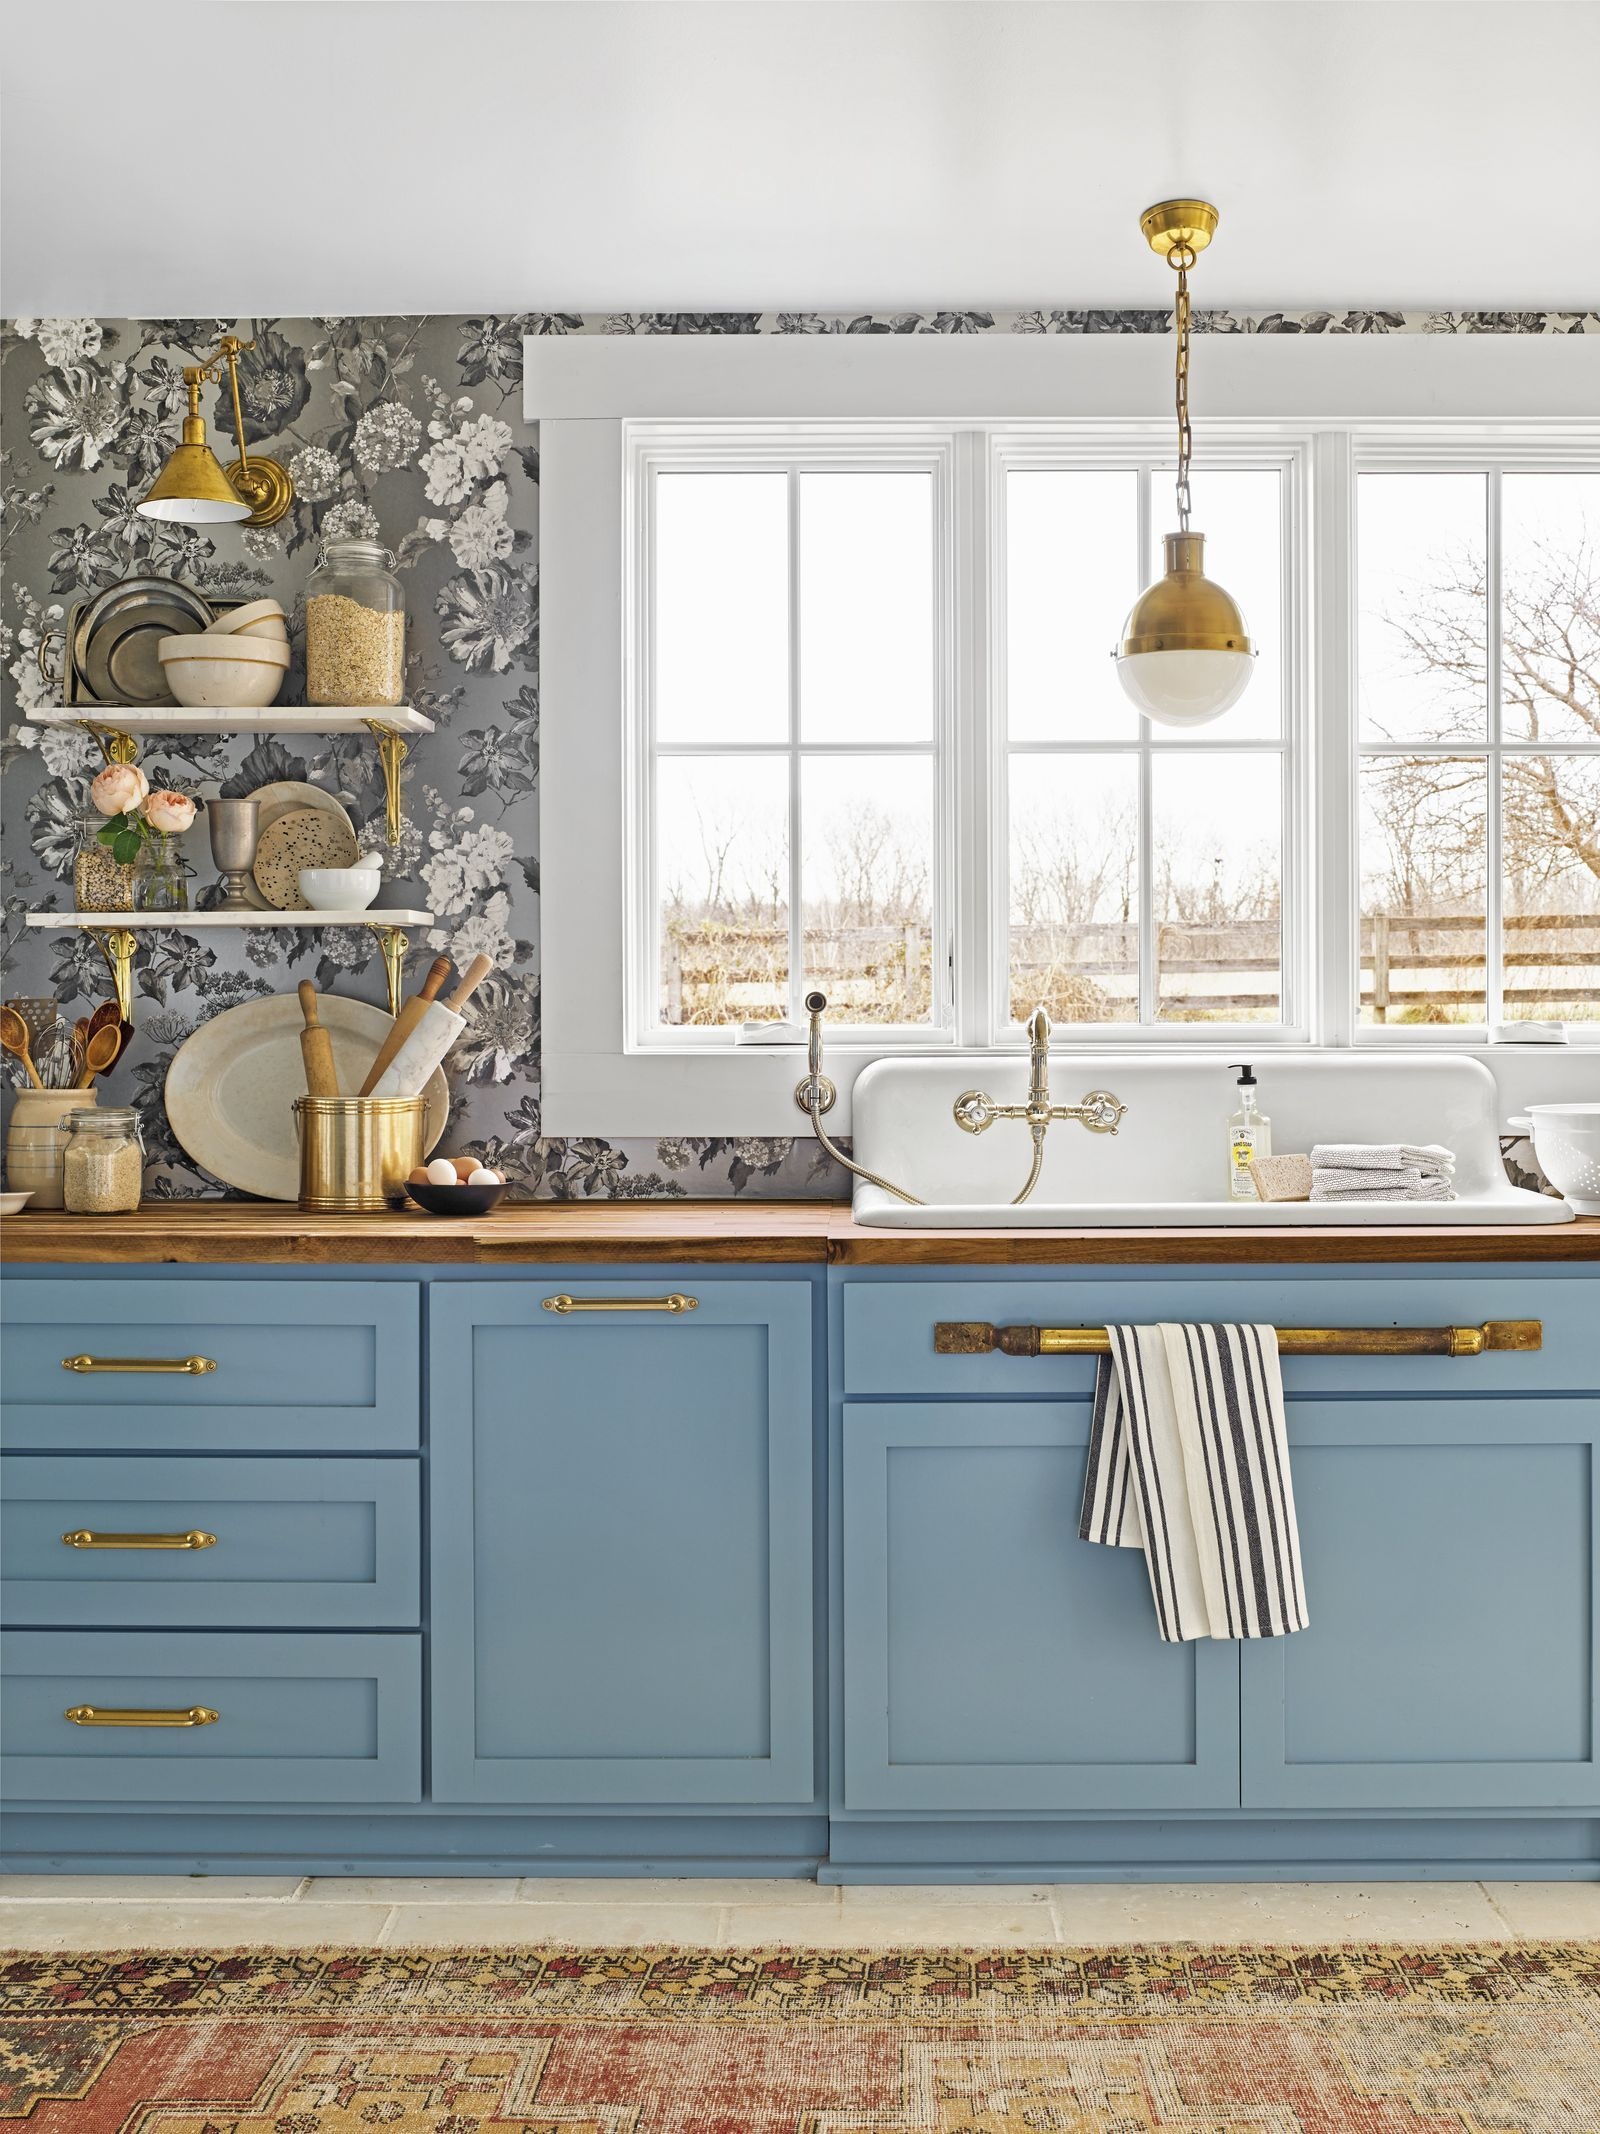 27 Of The Best Paint Colors For Small Spaces Kitchen Trends Country Kitchen Designs Kitchen Design Small